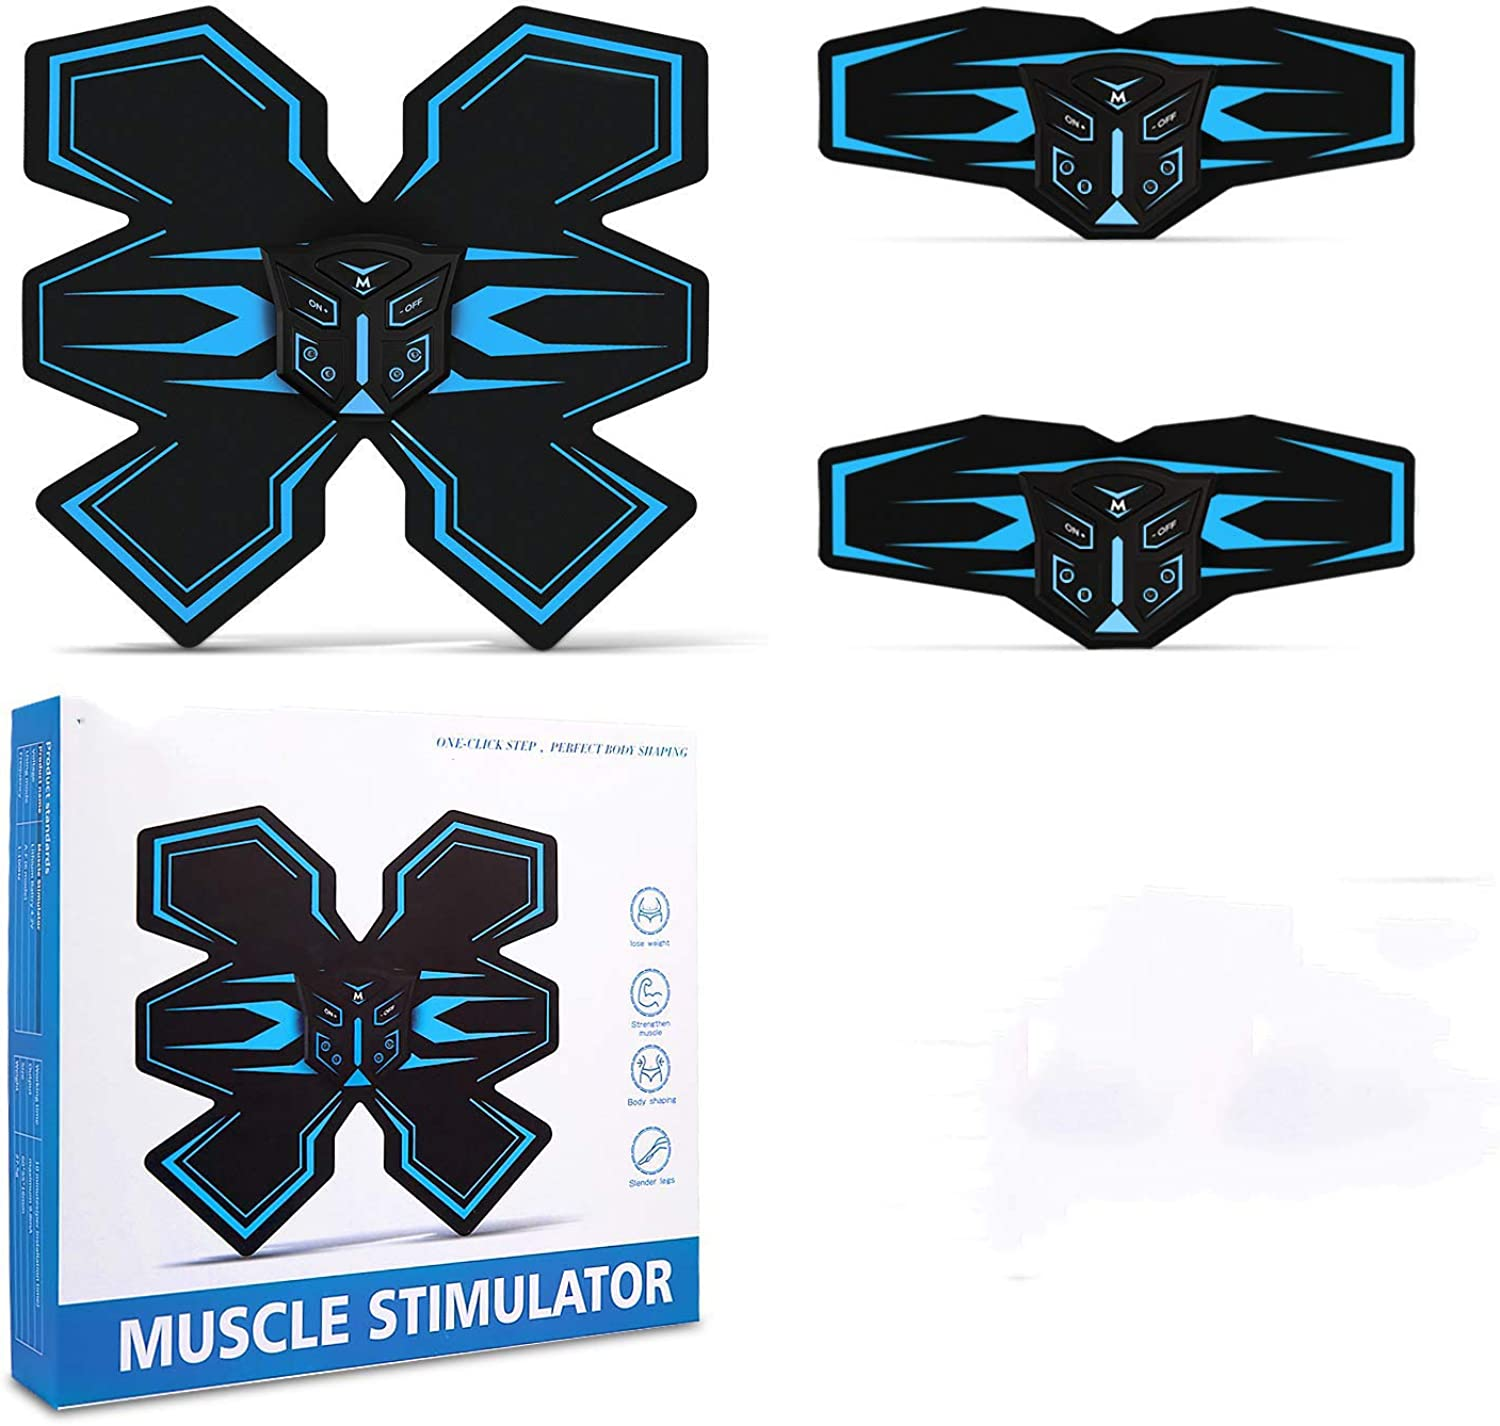 Muscle Toner, Abdominal Muscle Toner, Abs Muscle Stimulator, Abs Trainer, Abs Stimulator Muscle Toner, Abs Stimulator, Abs Stimulator for Men Women, Abs Stimulator Muscle Trainer